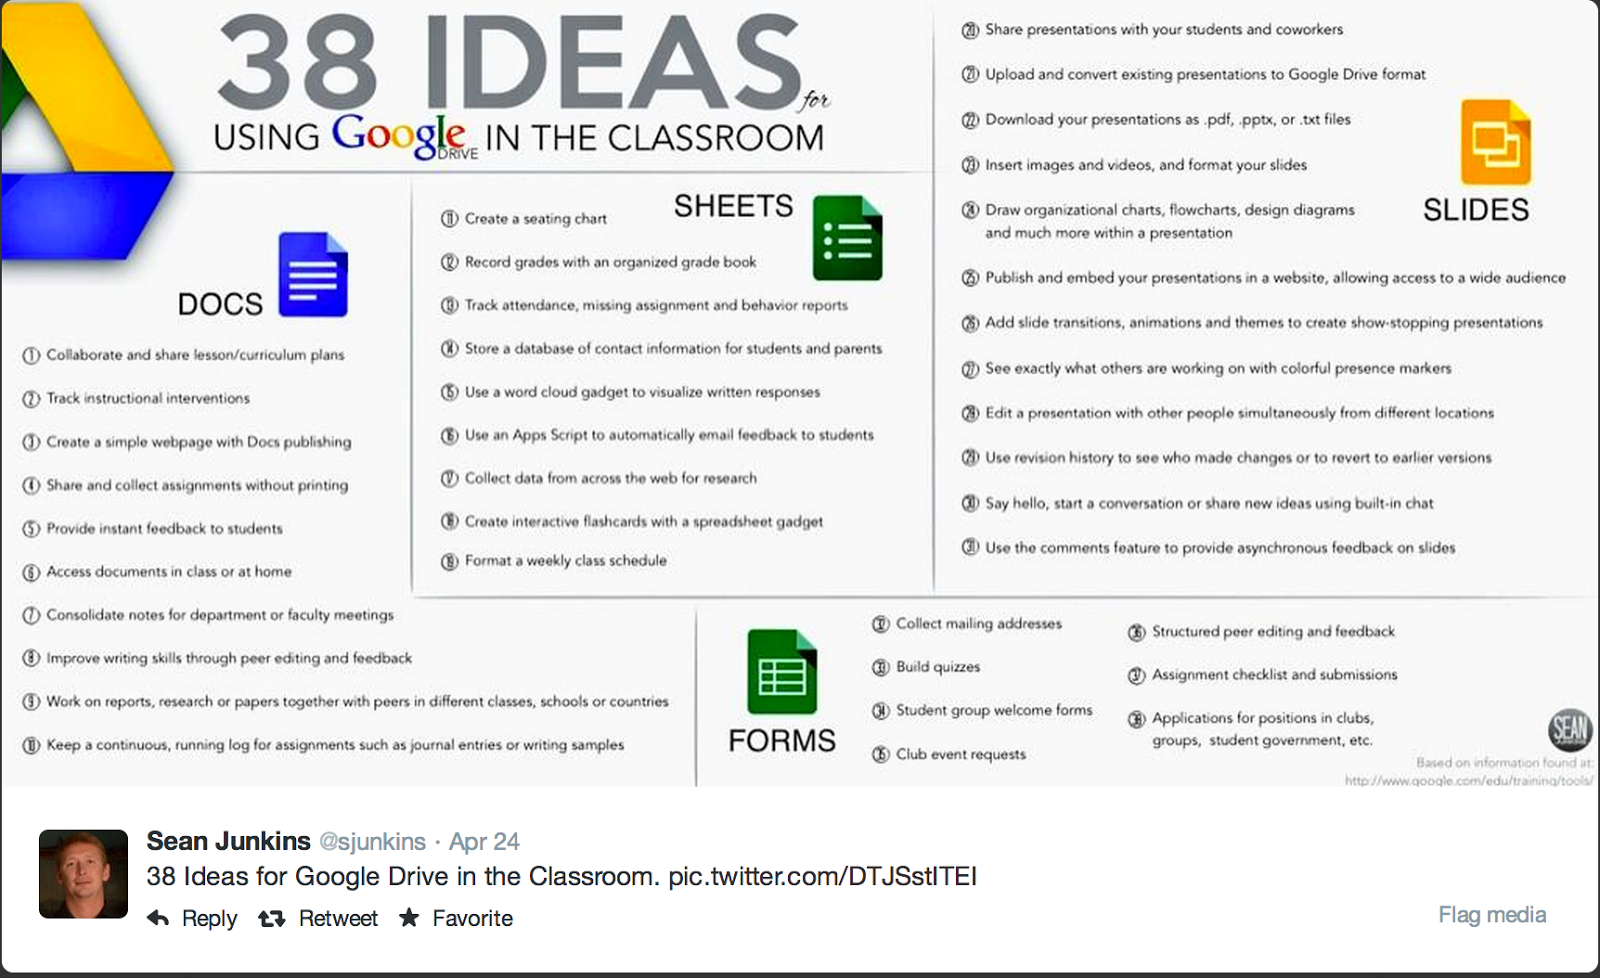 38 ideas to use google drive in class educational technology and today s post covers some interesting ideas and tips on how to go about using google drive in your classroom this work is created by sean junkins from